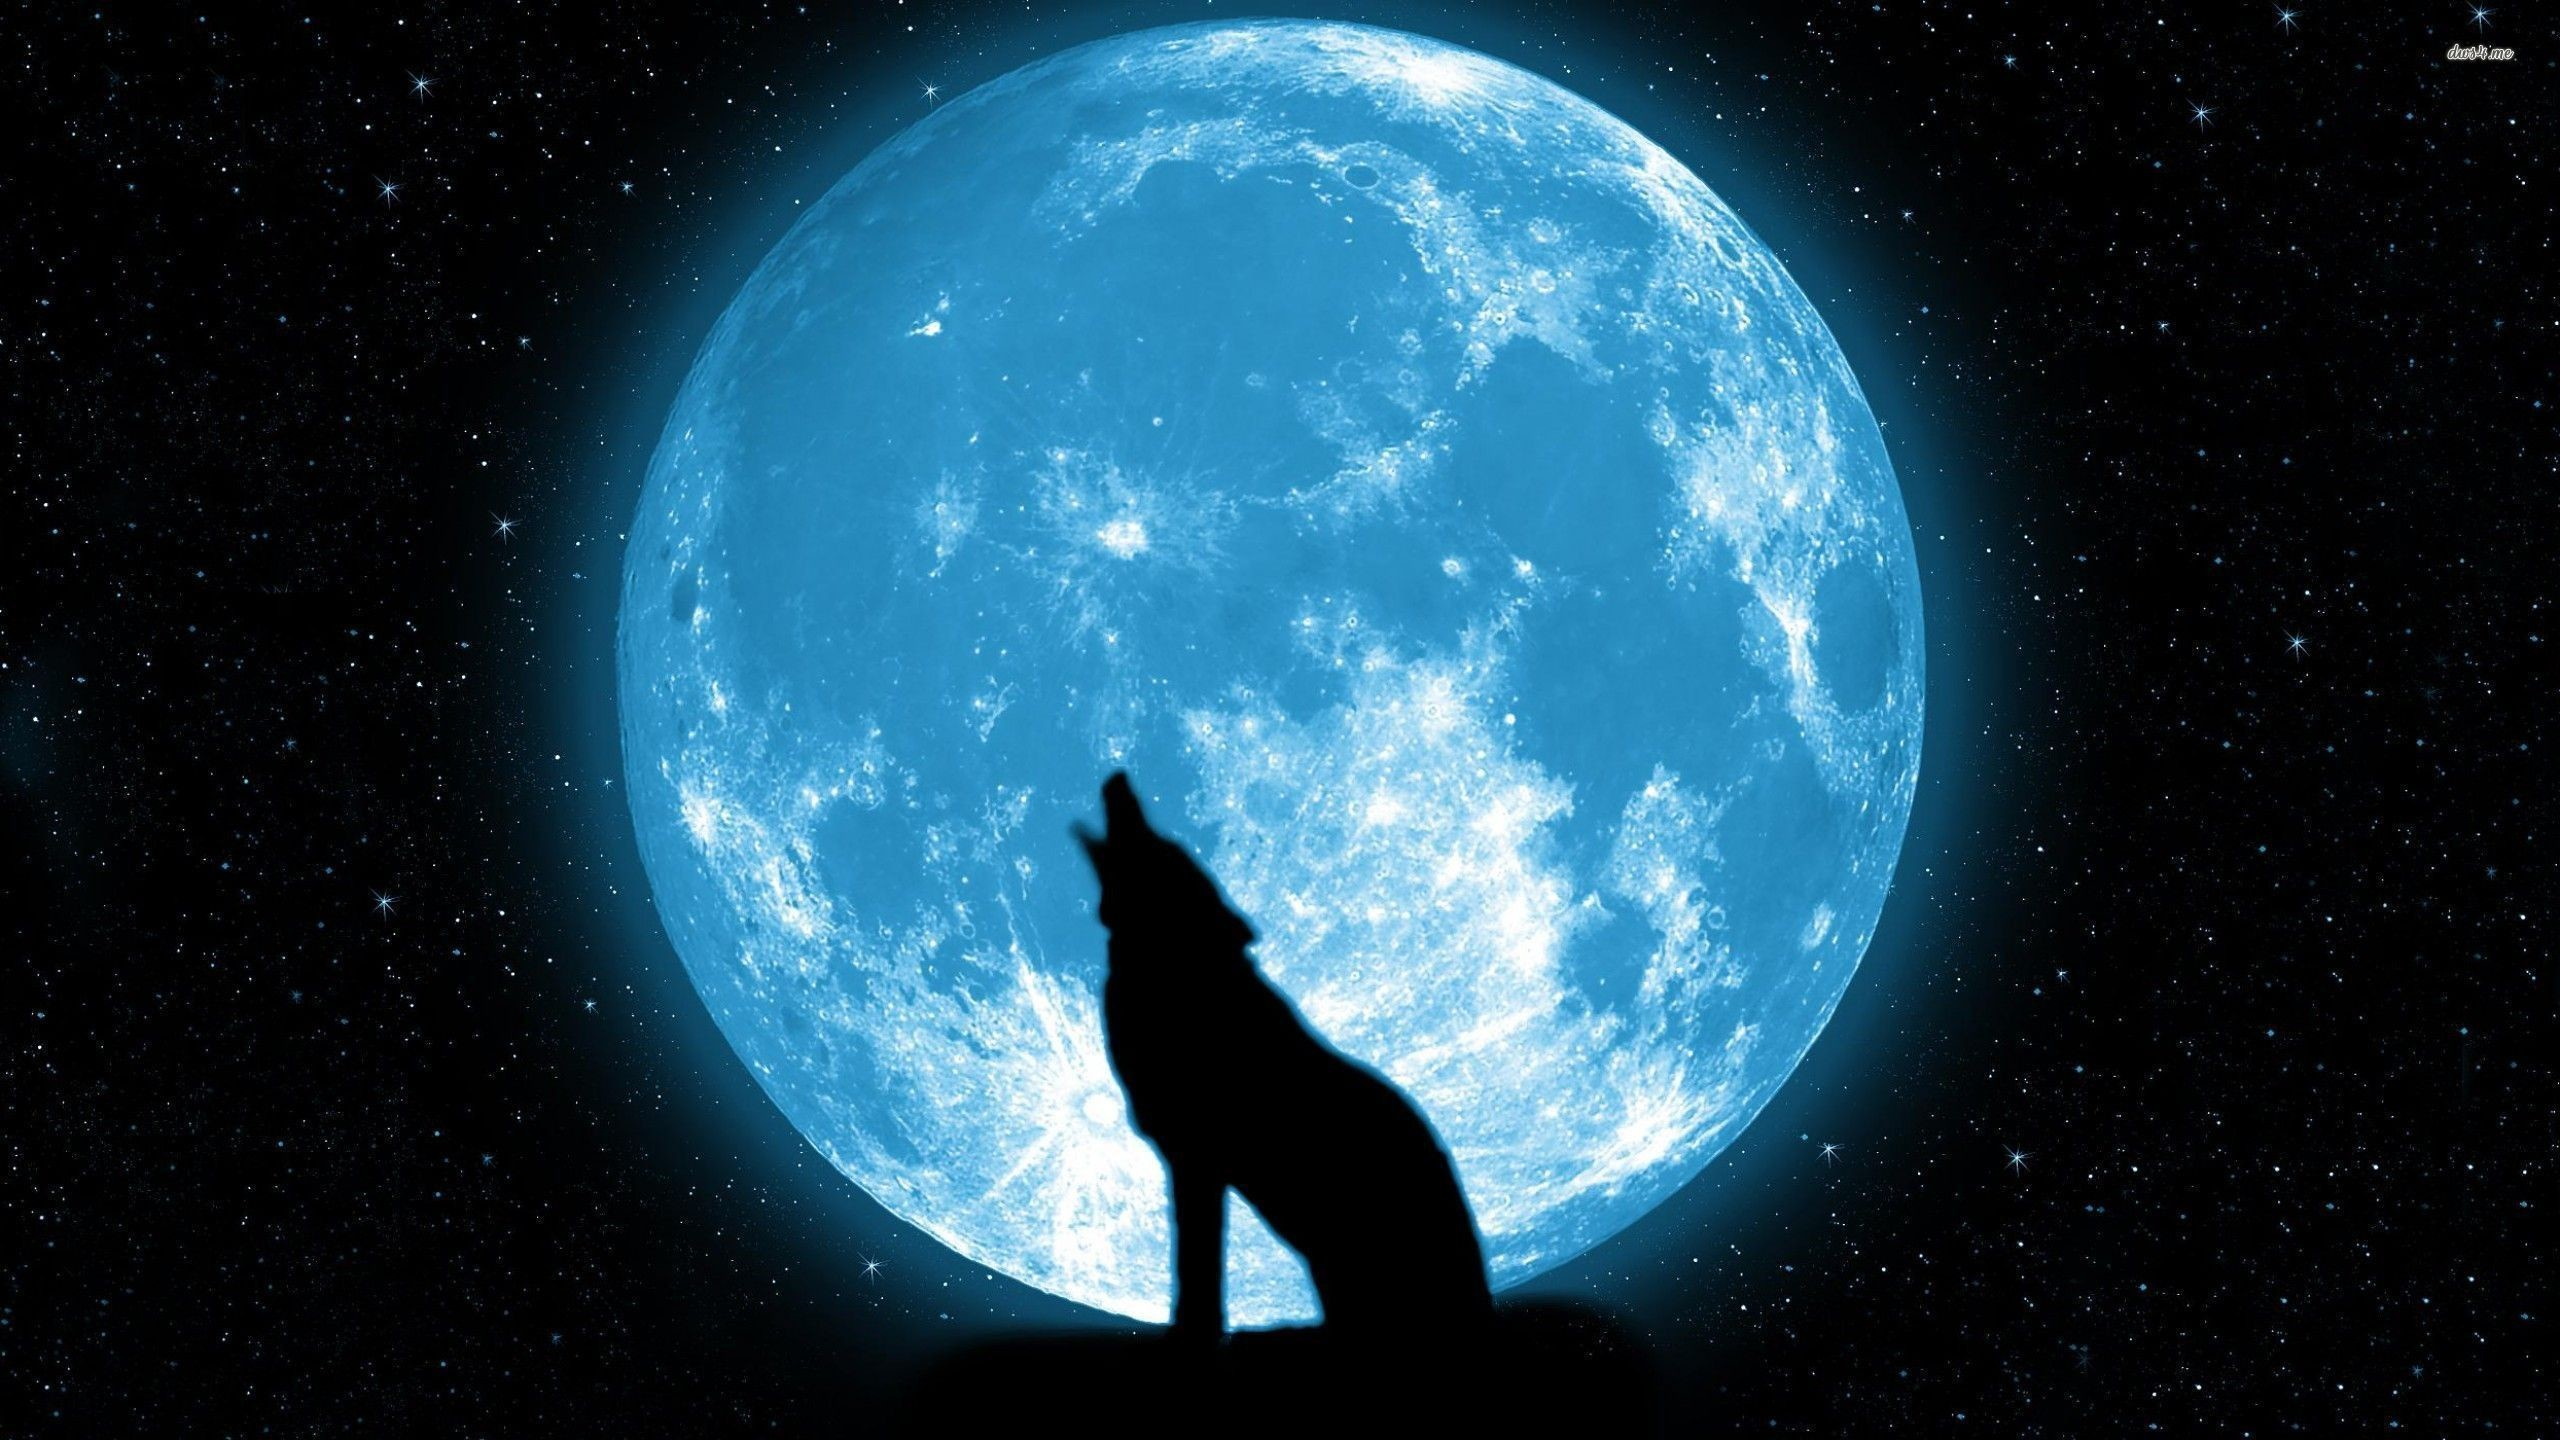 2560x1440 Blue Moon Wallpaper Wolf Howling At The Moon Hd 1867596 Hd Wallpaper Backgrounds Download